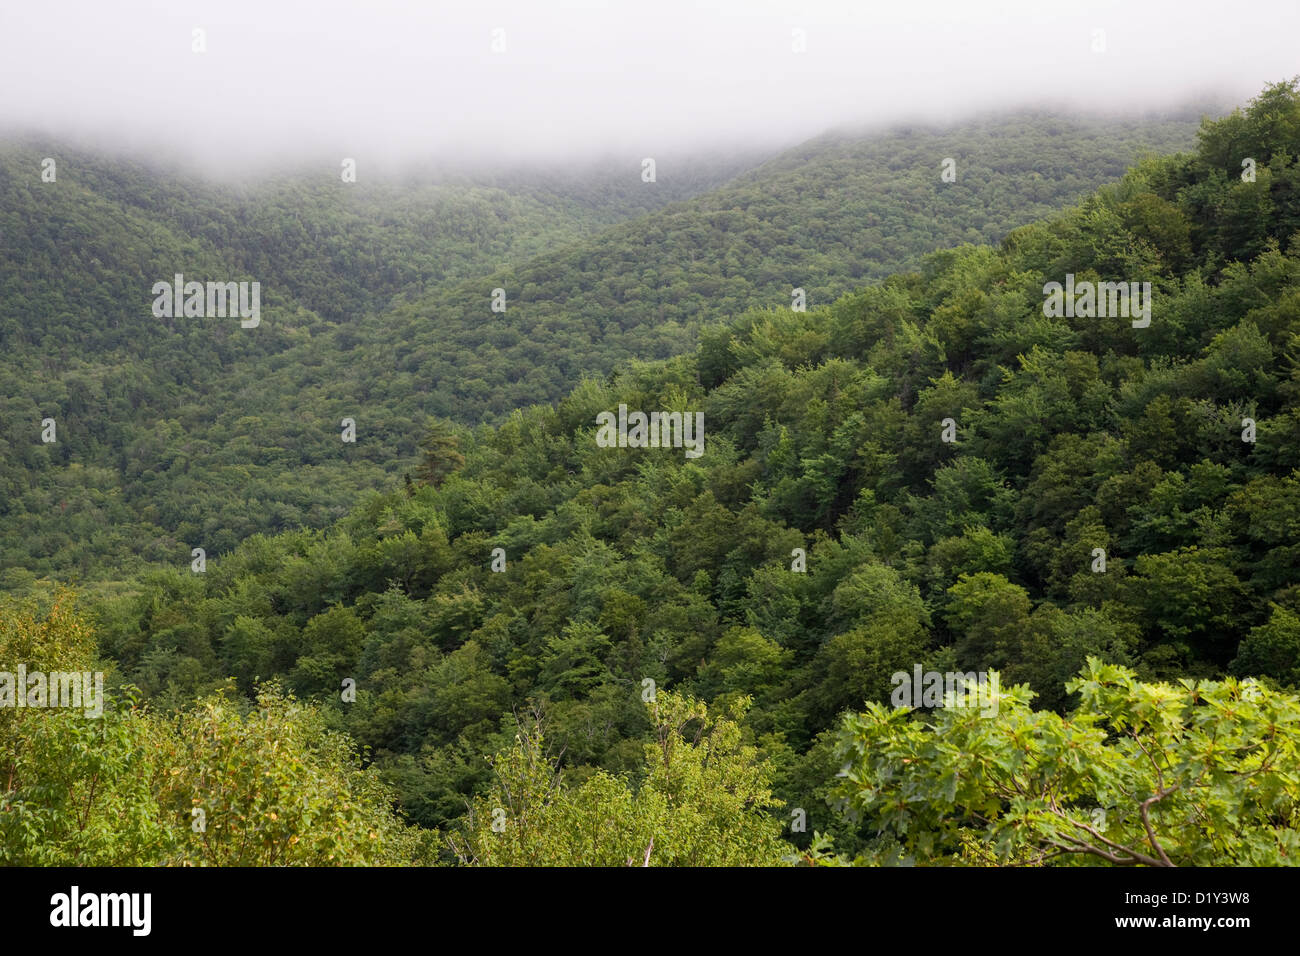 River valley with low mist descending on the Cabot Trail, Cape Breton, Nova Scotia - Stock Image